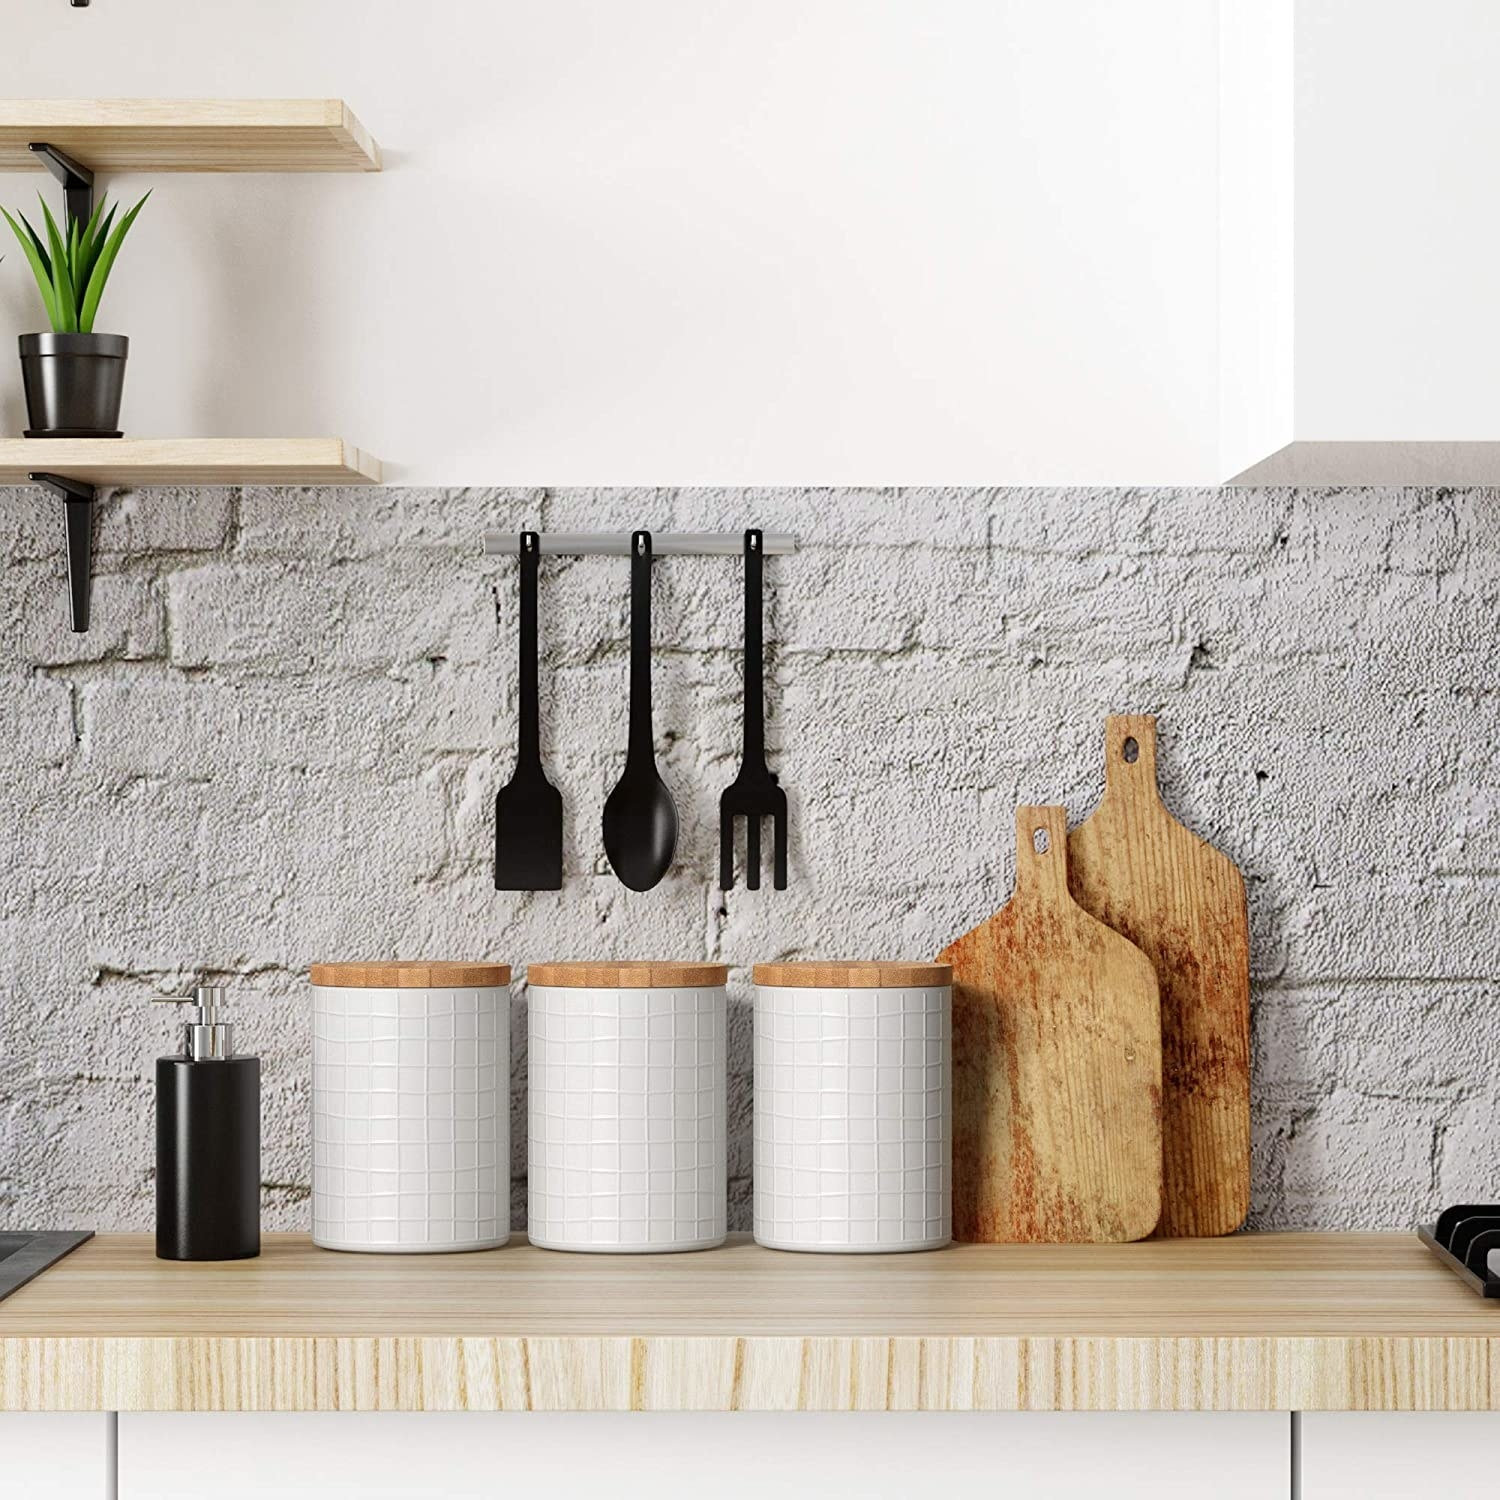 the three barnyard designs kitchen canisters on a kitchen counter